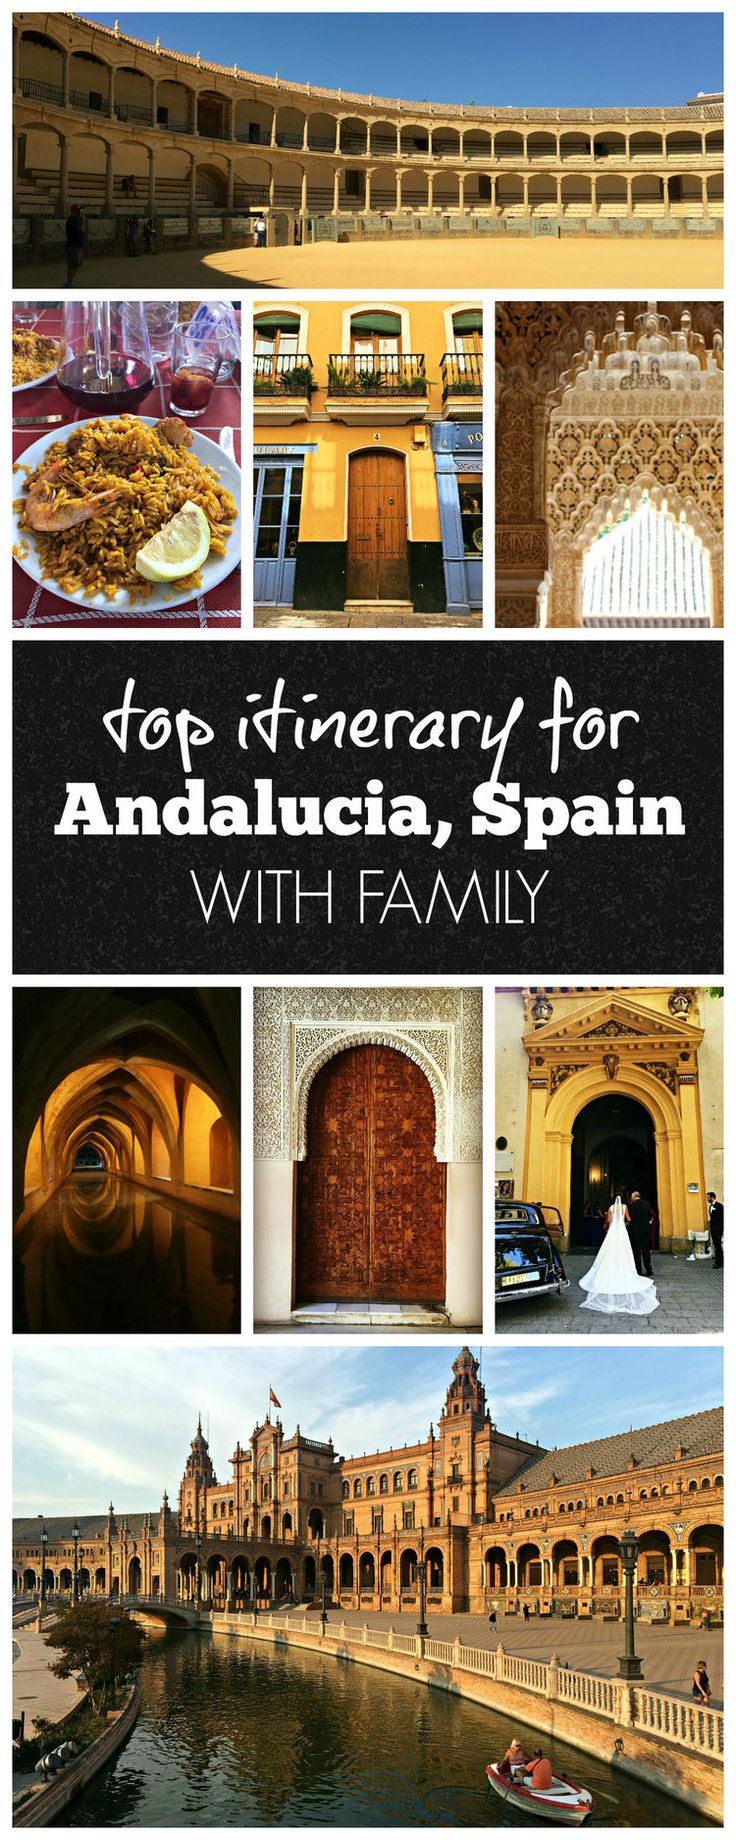 Exploring Andalucia, Spain with family. A look at an eight day itinerary for Sevilla, Cordoba, Ronda, Granada, and Nerja. Celebrating a 50th wedding anniversary with family in southern Spain was a blast!